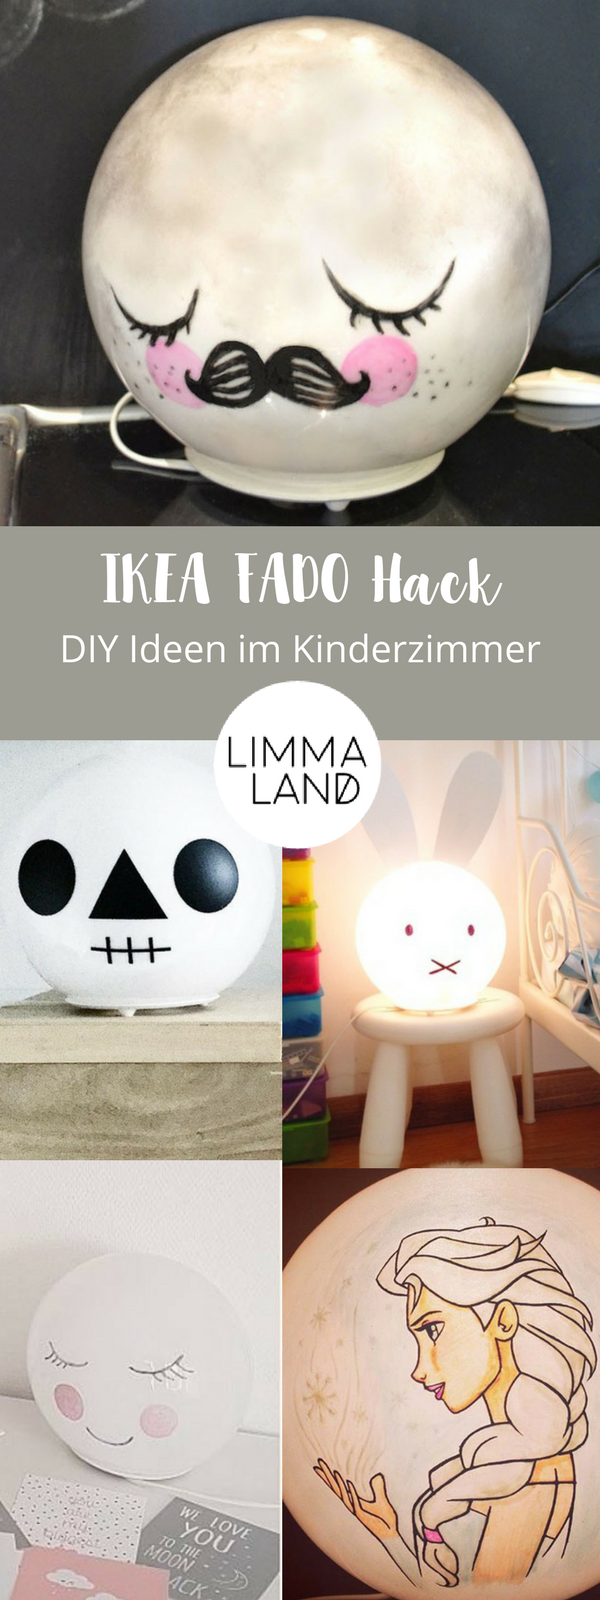 ikea fado hack eine lampe mit vielen gesichtern pinterest ikea hacks hacks und da sein. Black Bedroom Furniture Sets. Home Design Ideas